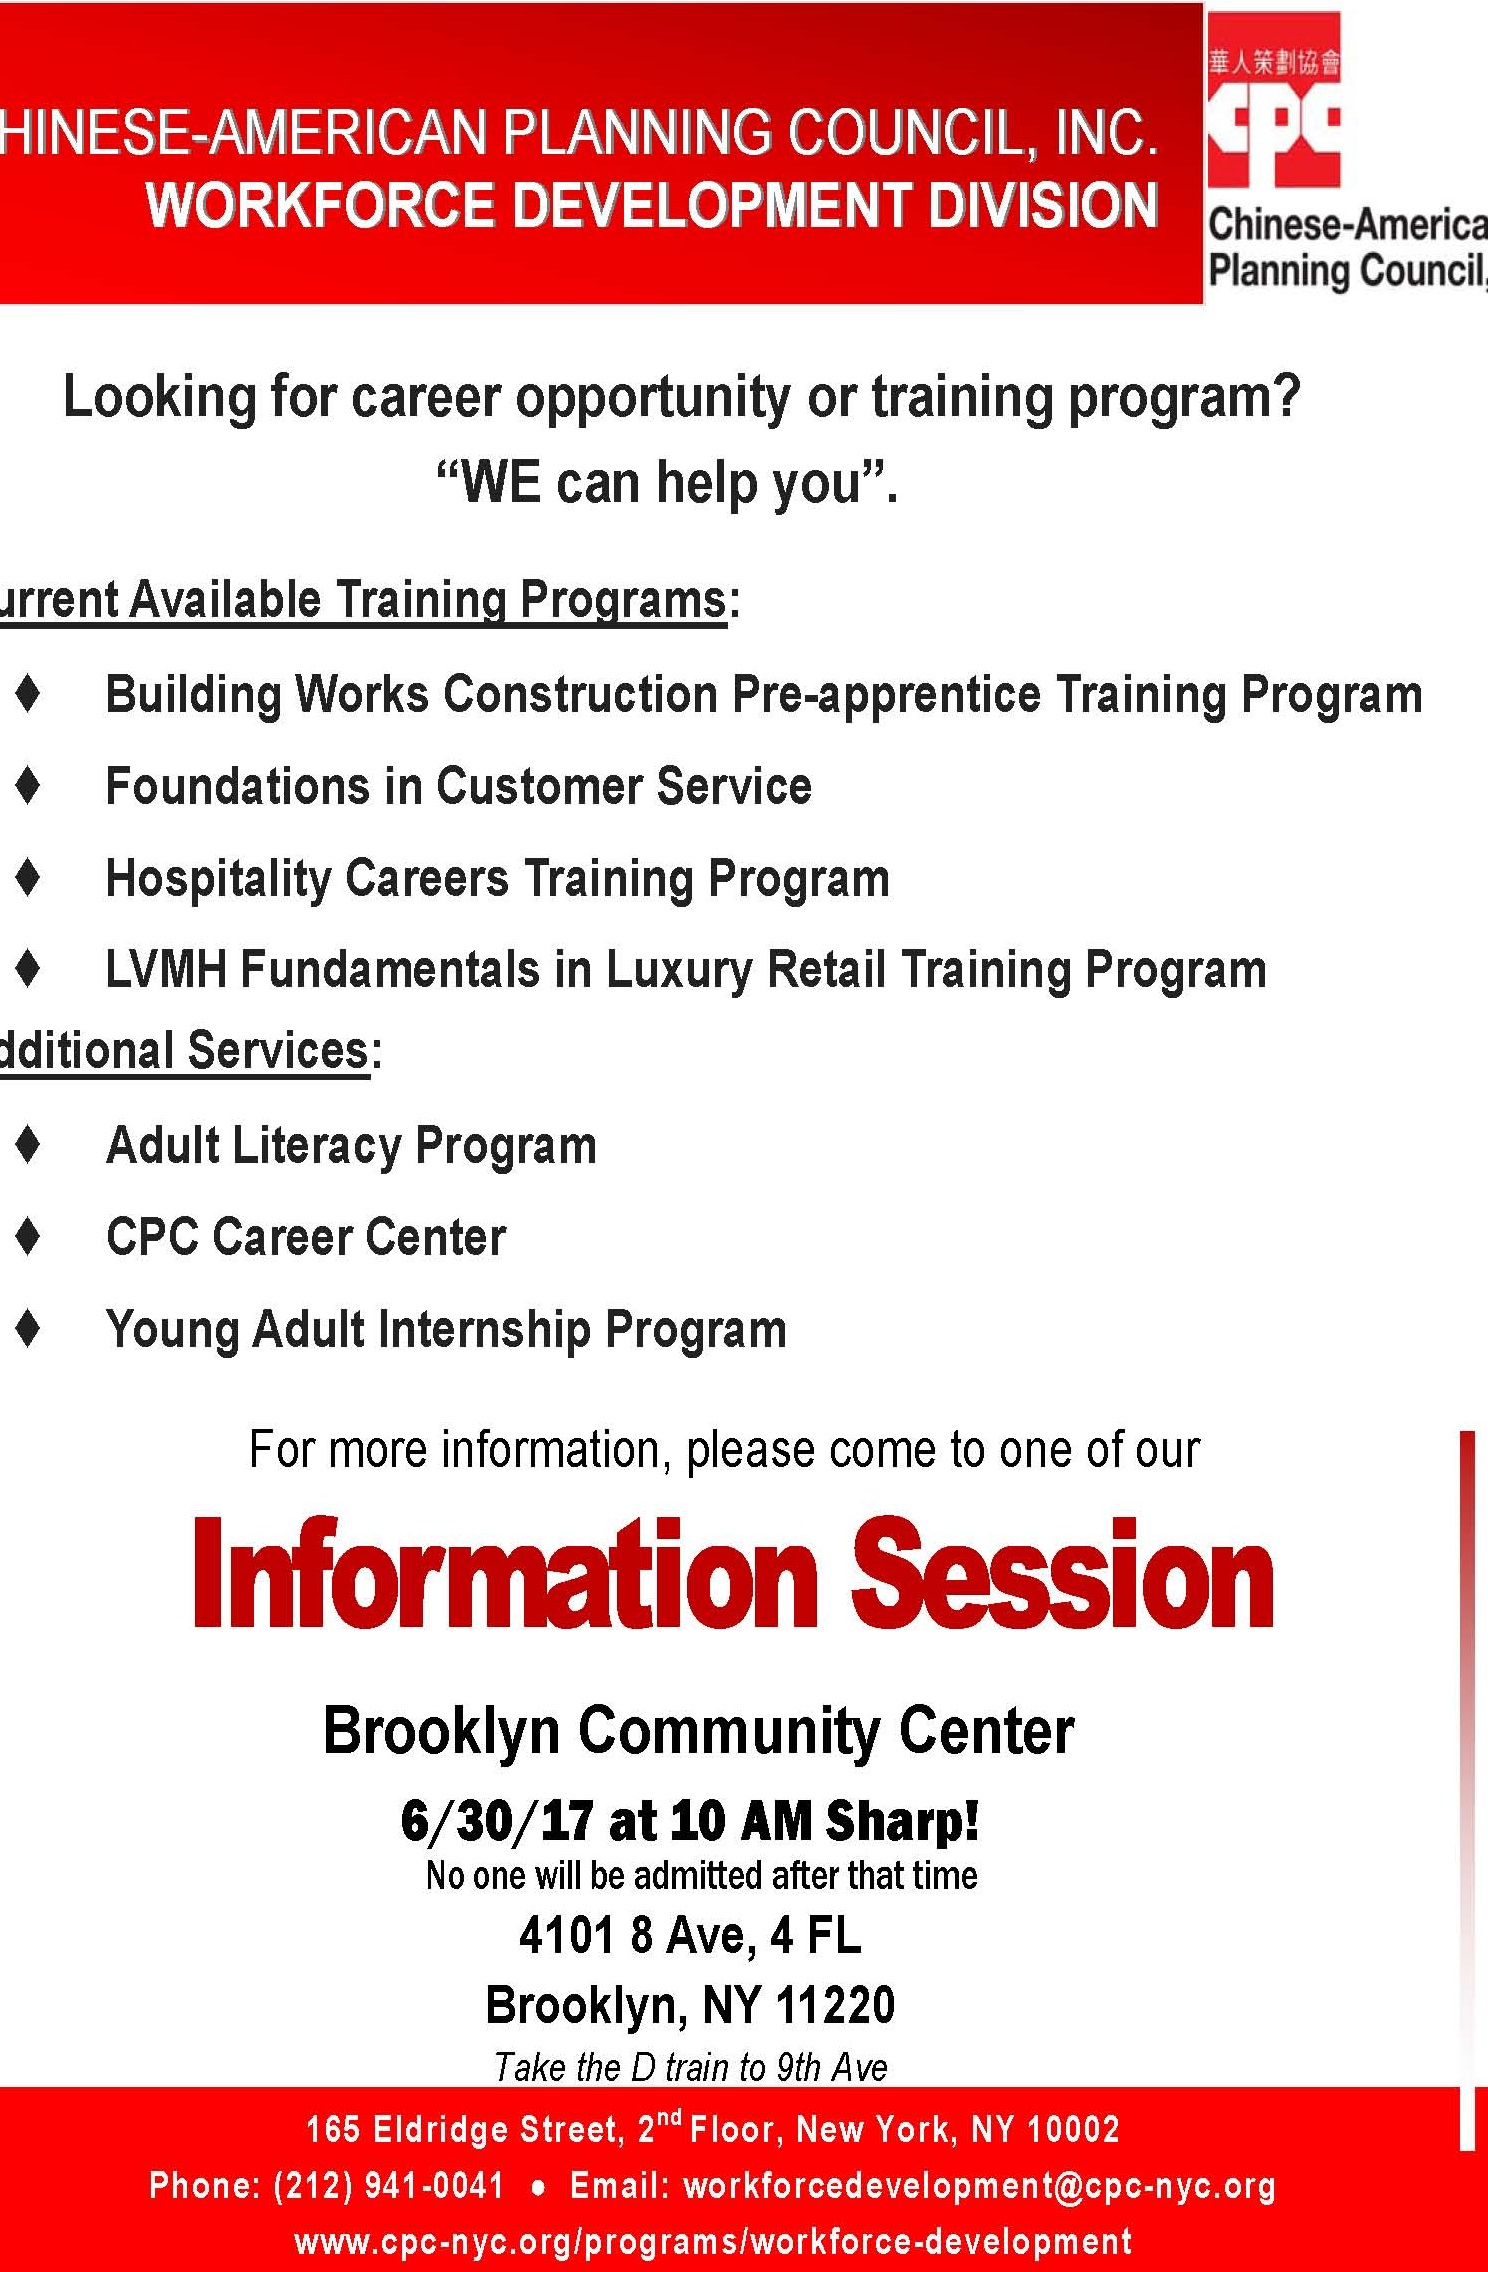 Workforce Development Division Brooklyn Information Session Overview